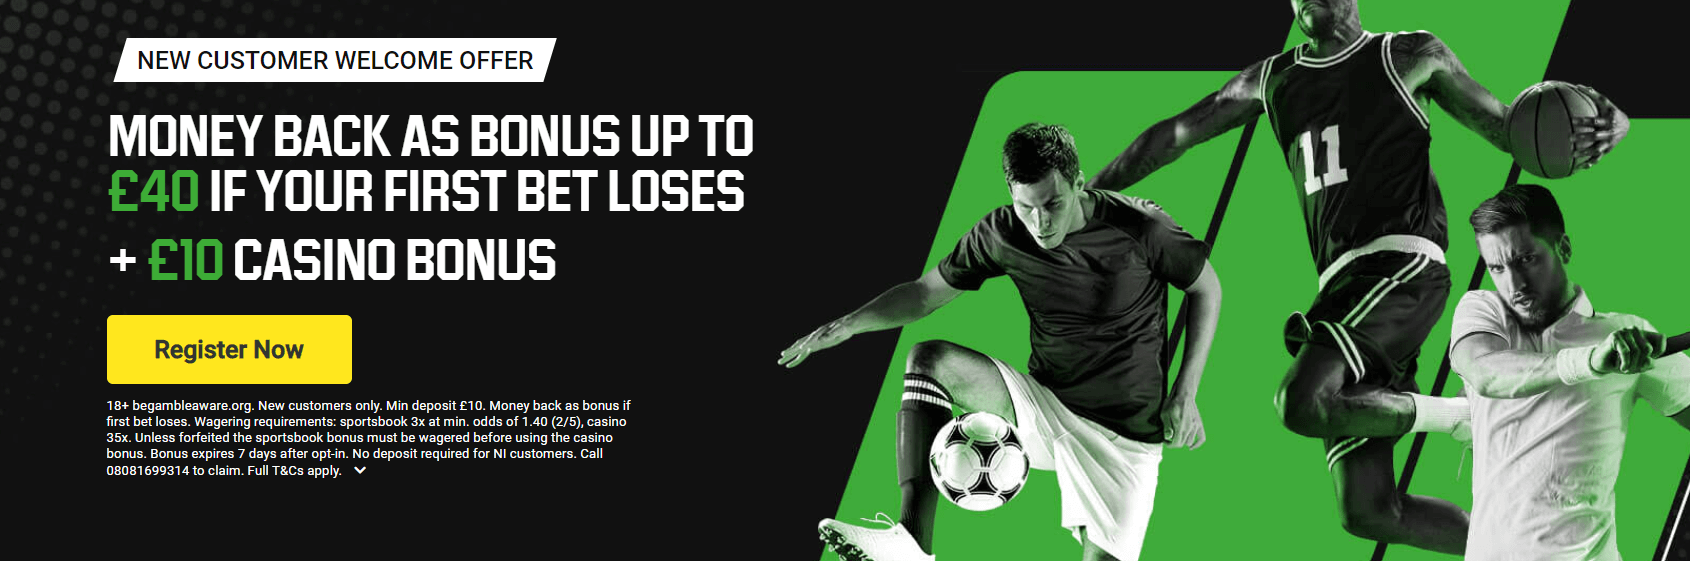 Unibet welcome offer